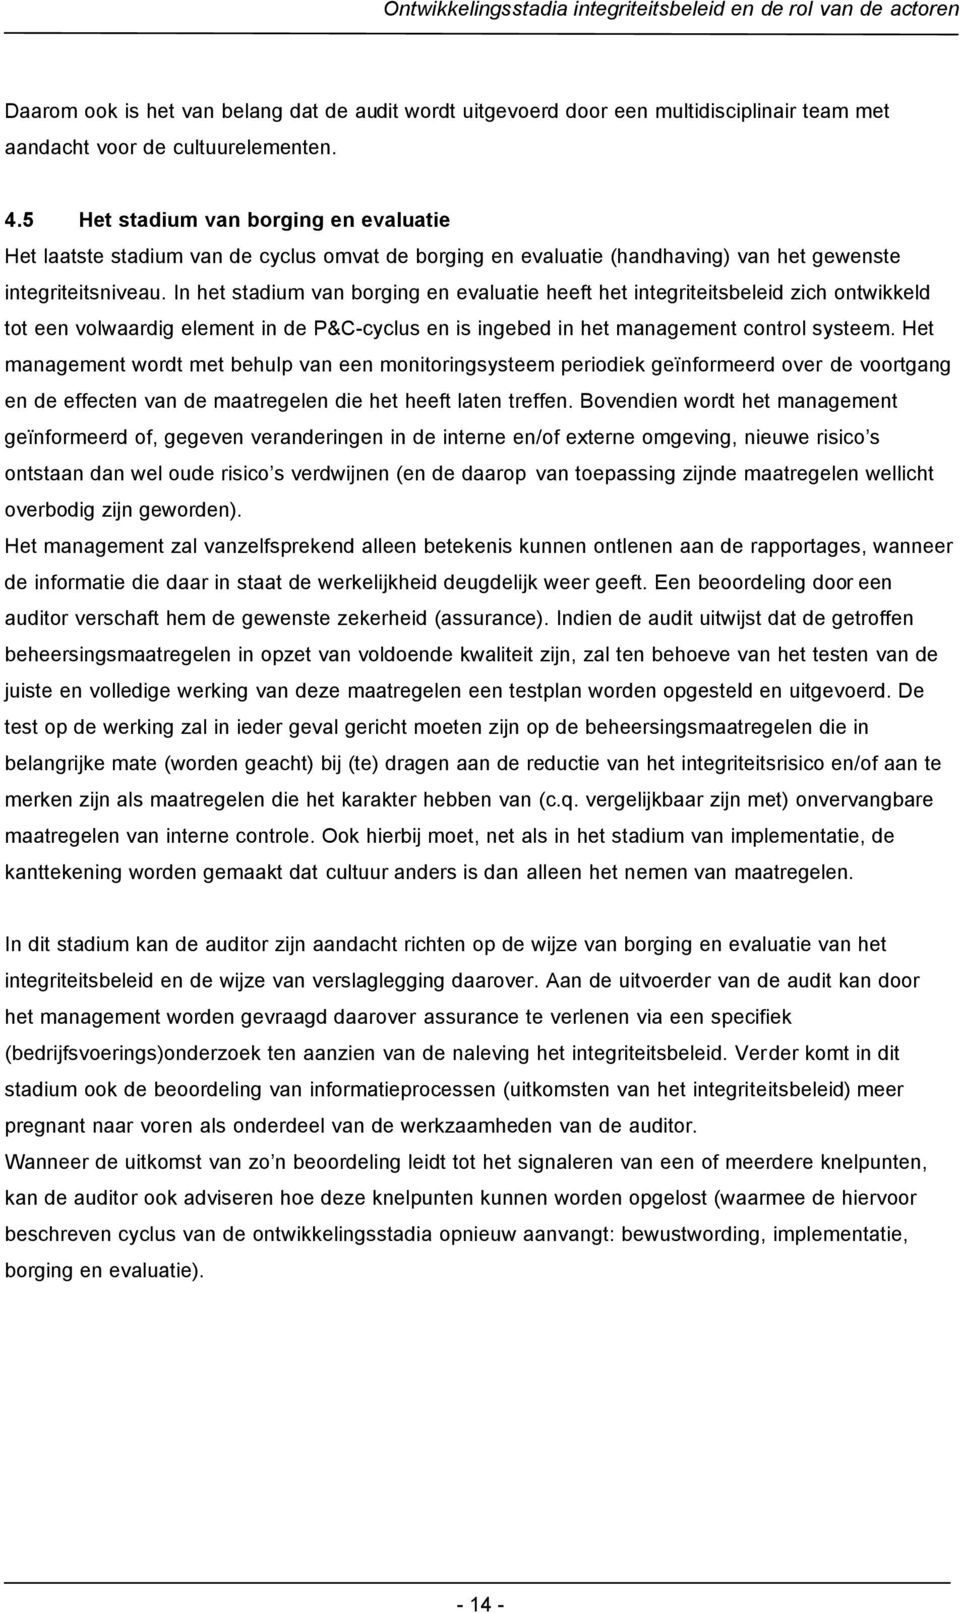 In het stadium van borging en evaluatie heeft het integriteitsbeleid zich ontwikkeld tot een volwaardig element in de P&C-cyclus en is ingebed in het management control systeem.